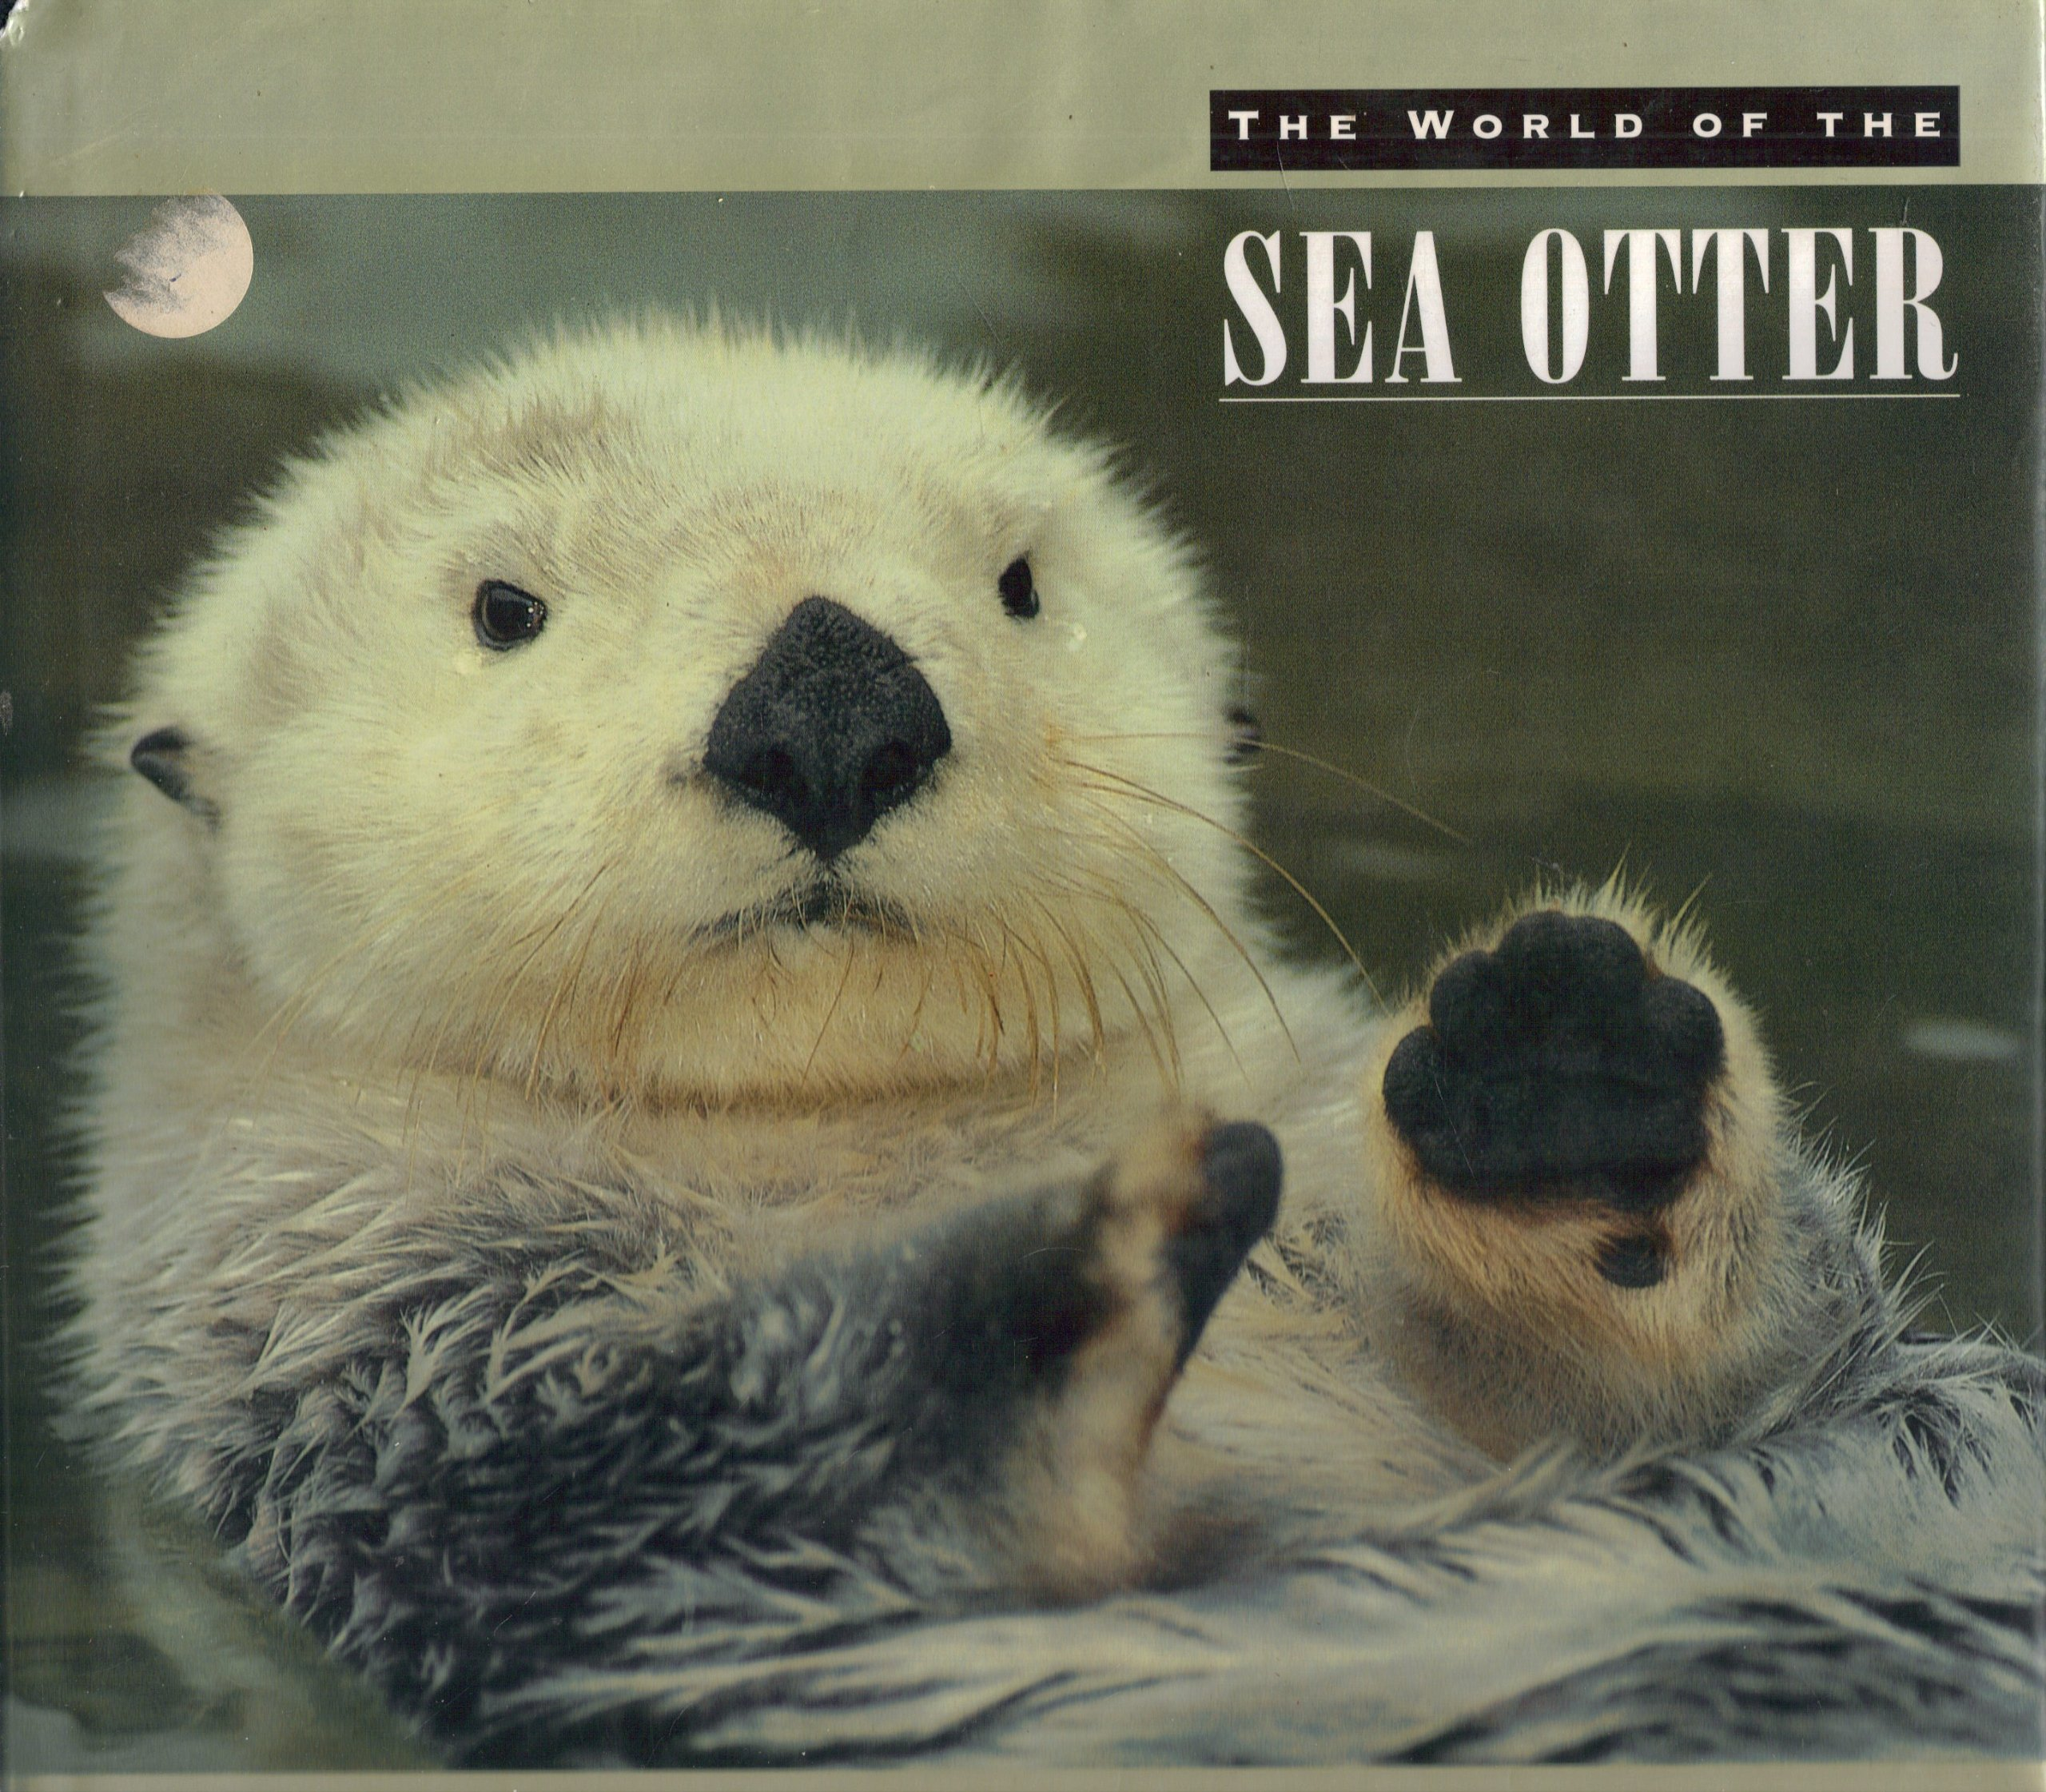 The World of the Sea Otter Hardcover – October 26, 1993 Stephani Paine Random House Inc. 0871565463